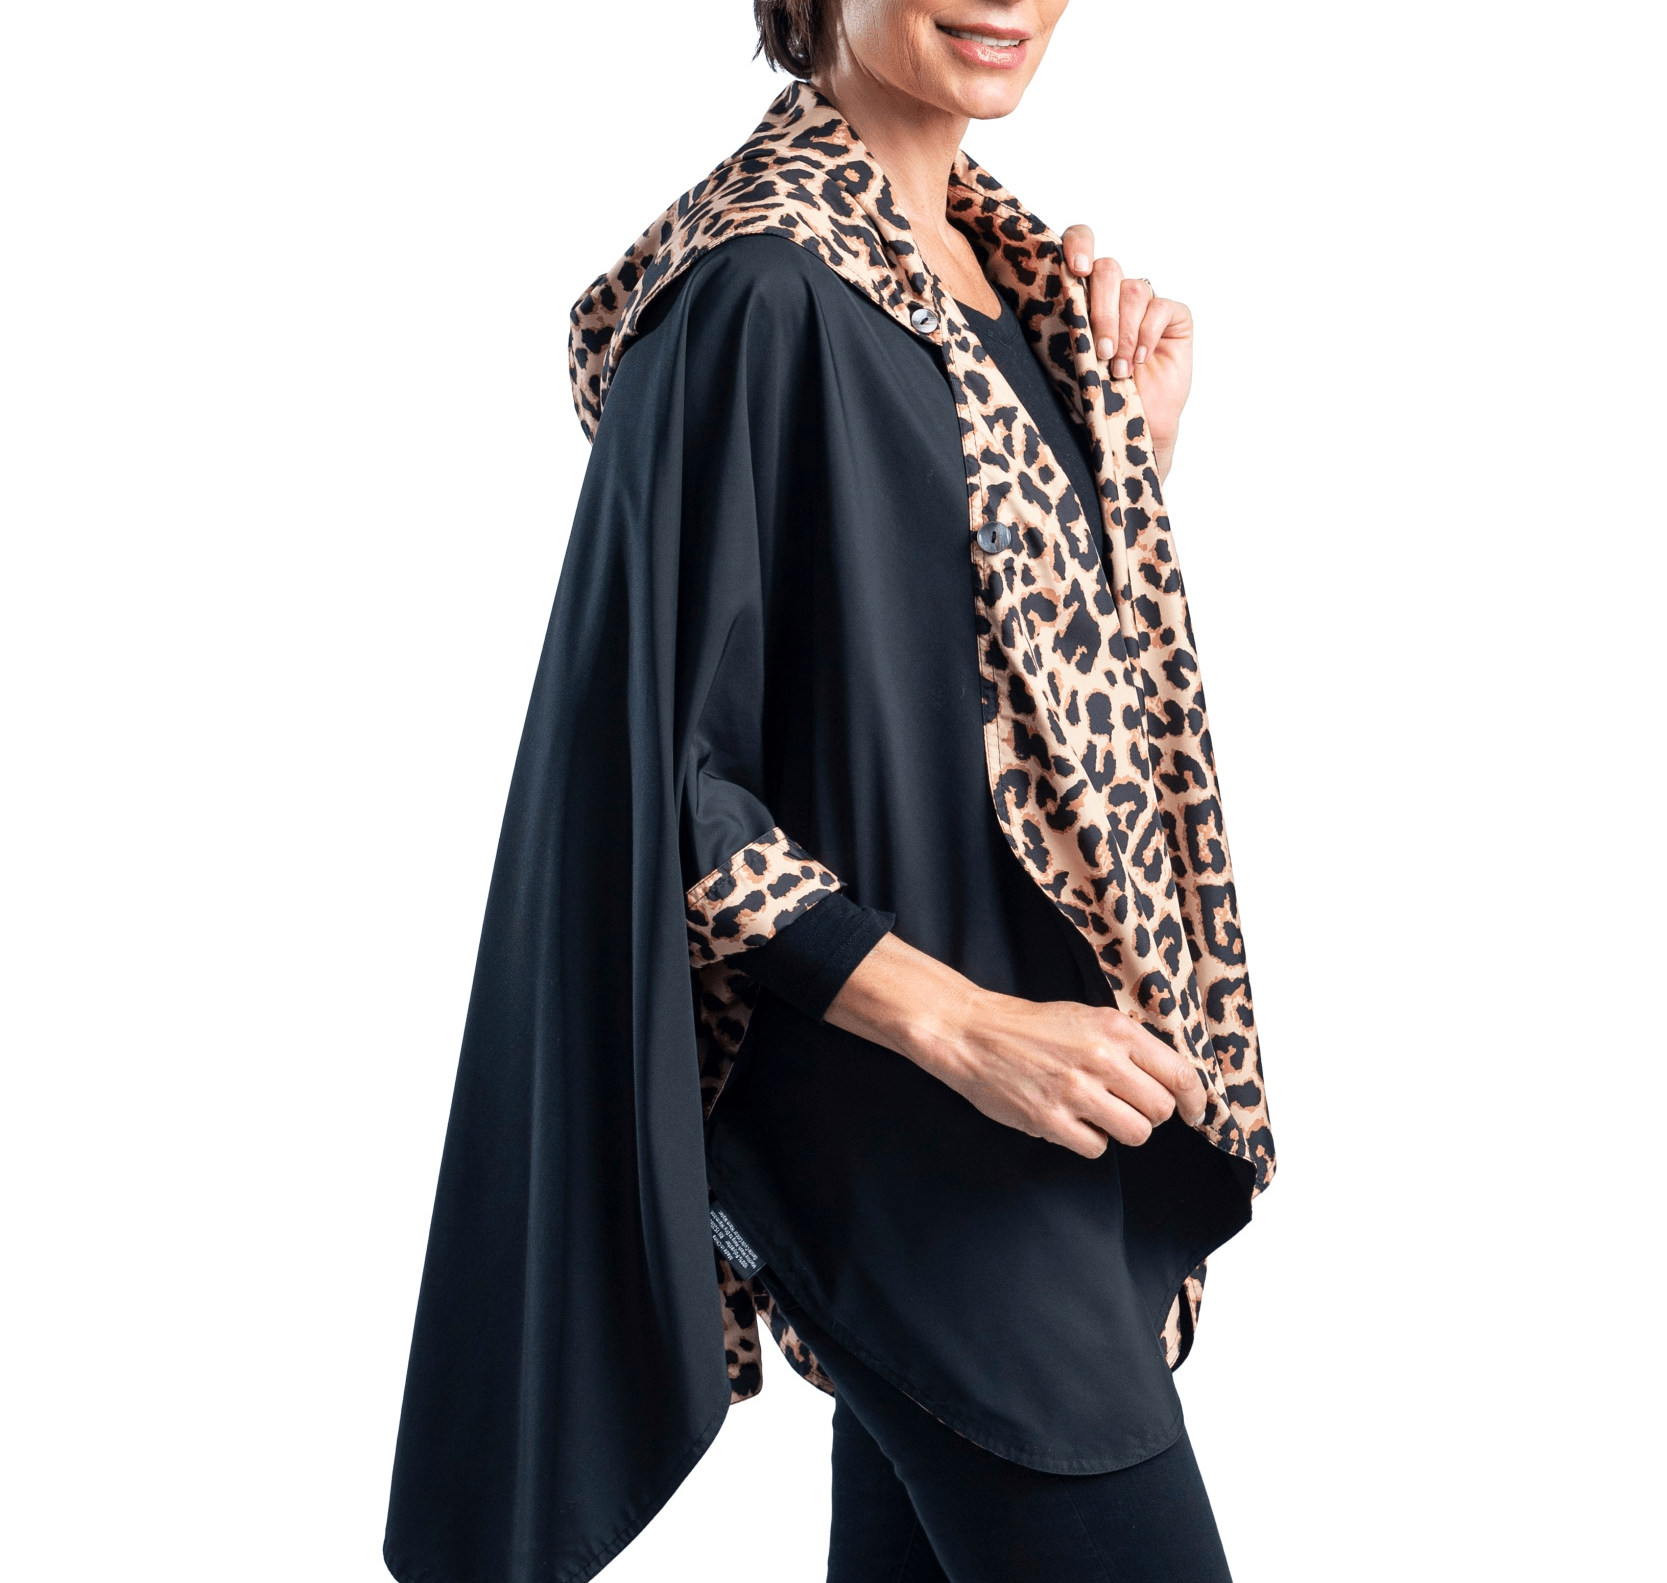 71dfc98fc RainCaper Black & Leopard Travel Cape & Womens Rain Coat